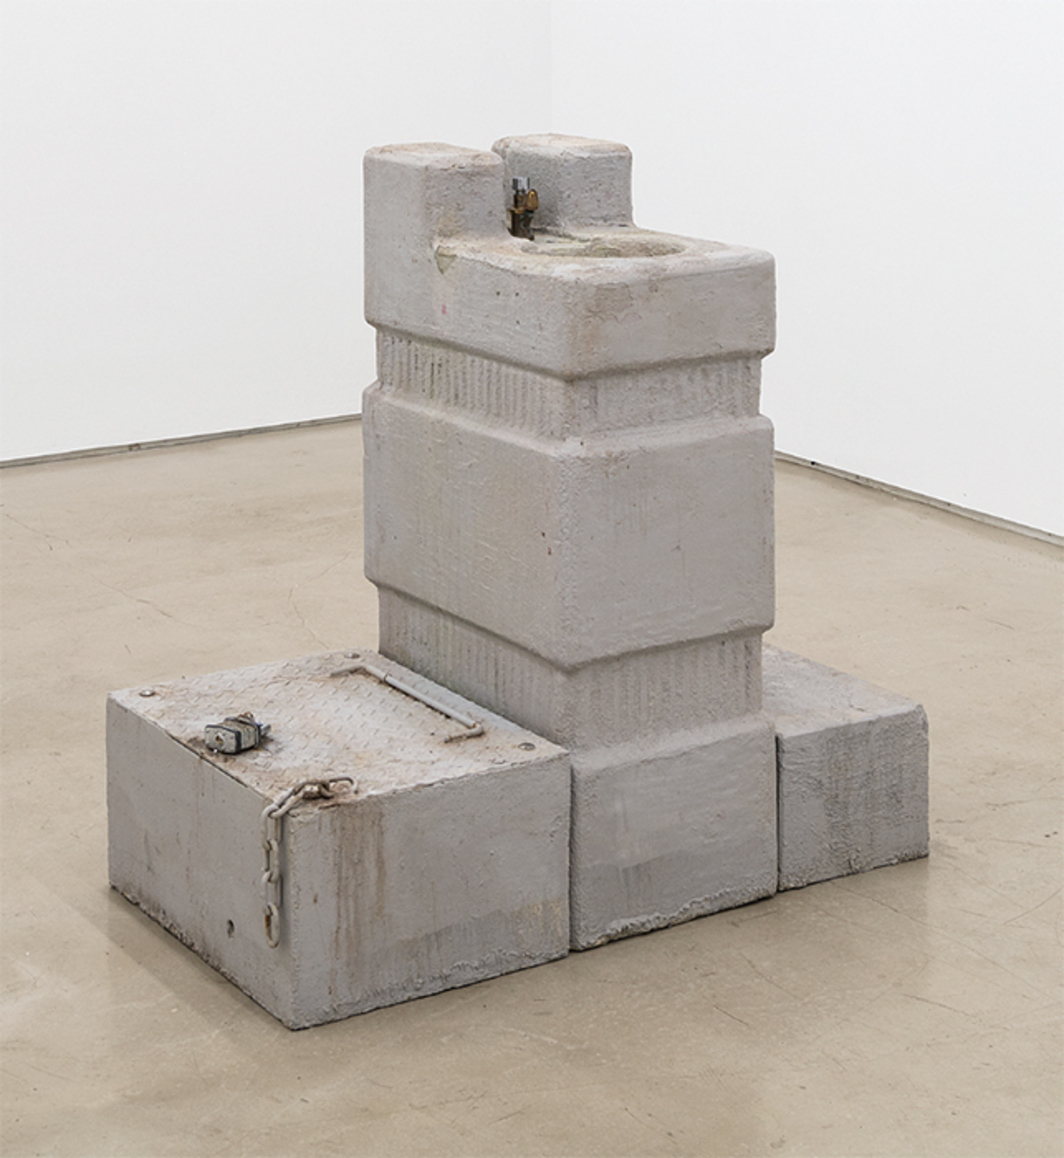 "Fiona Connor, On What Remains (fountain), 2015, concrete, expanded polystyrene foam, antique brass hardware, plumbing supplies, steel, plywood, paint, coatings, car battery, pump, water, 36 × 24 × 36""."